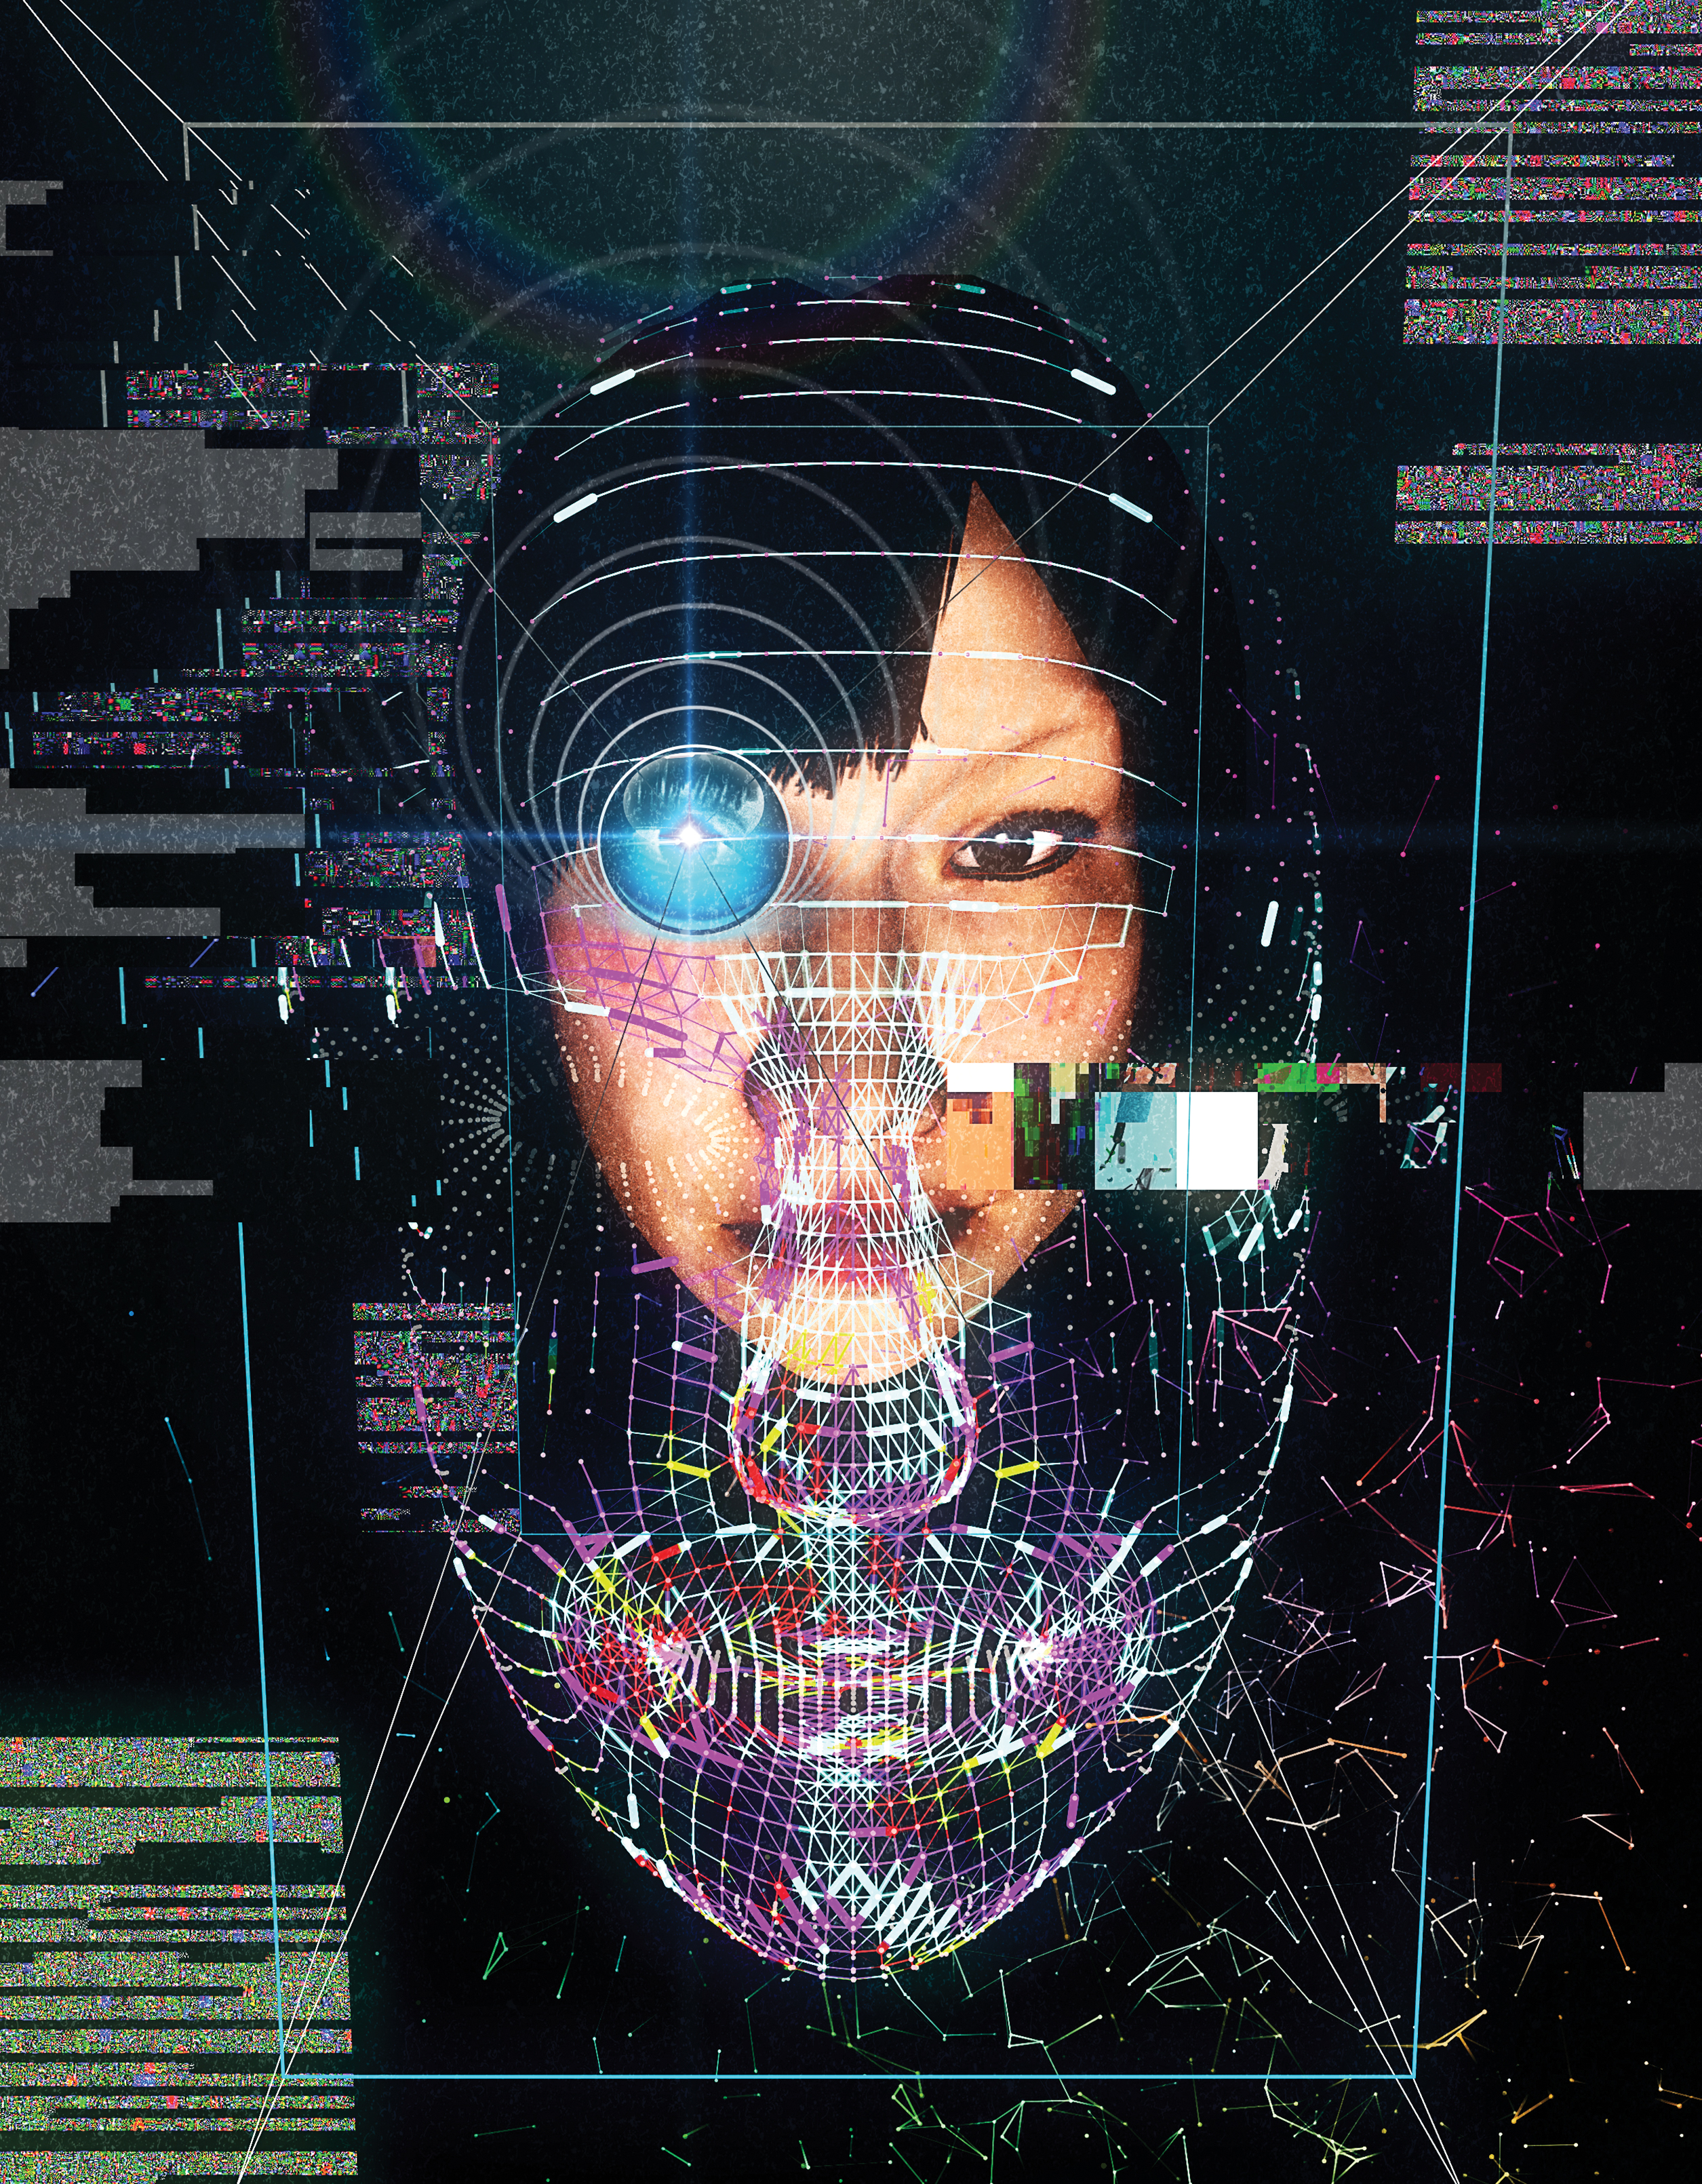 "<b><a href=""https://www.technologyreview.com/s/603494/10-breakthrough-technologies-2017-paying-with-your-face/"">Paying With Your Face</a></b> <br> Illustration by Yoshi Sodeoka"